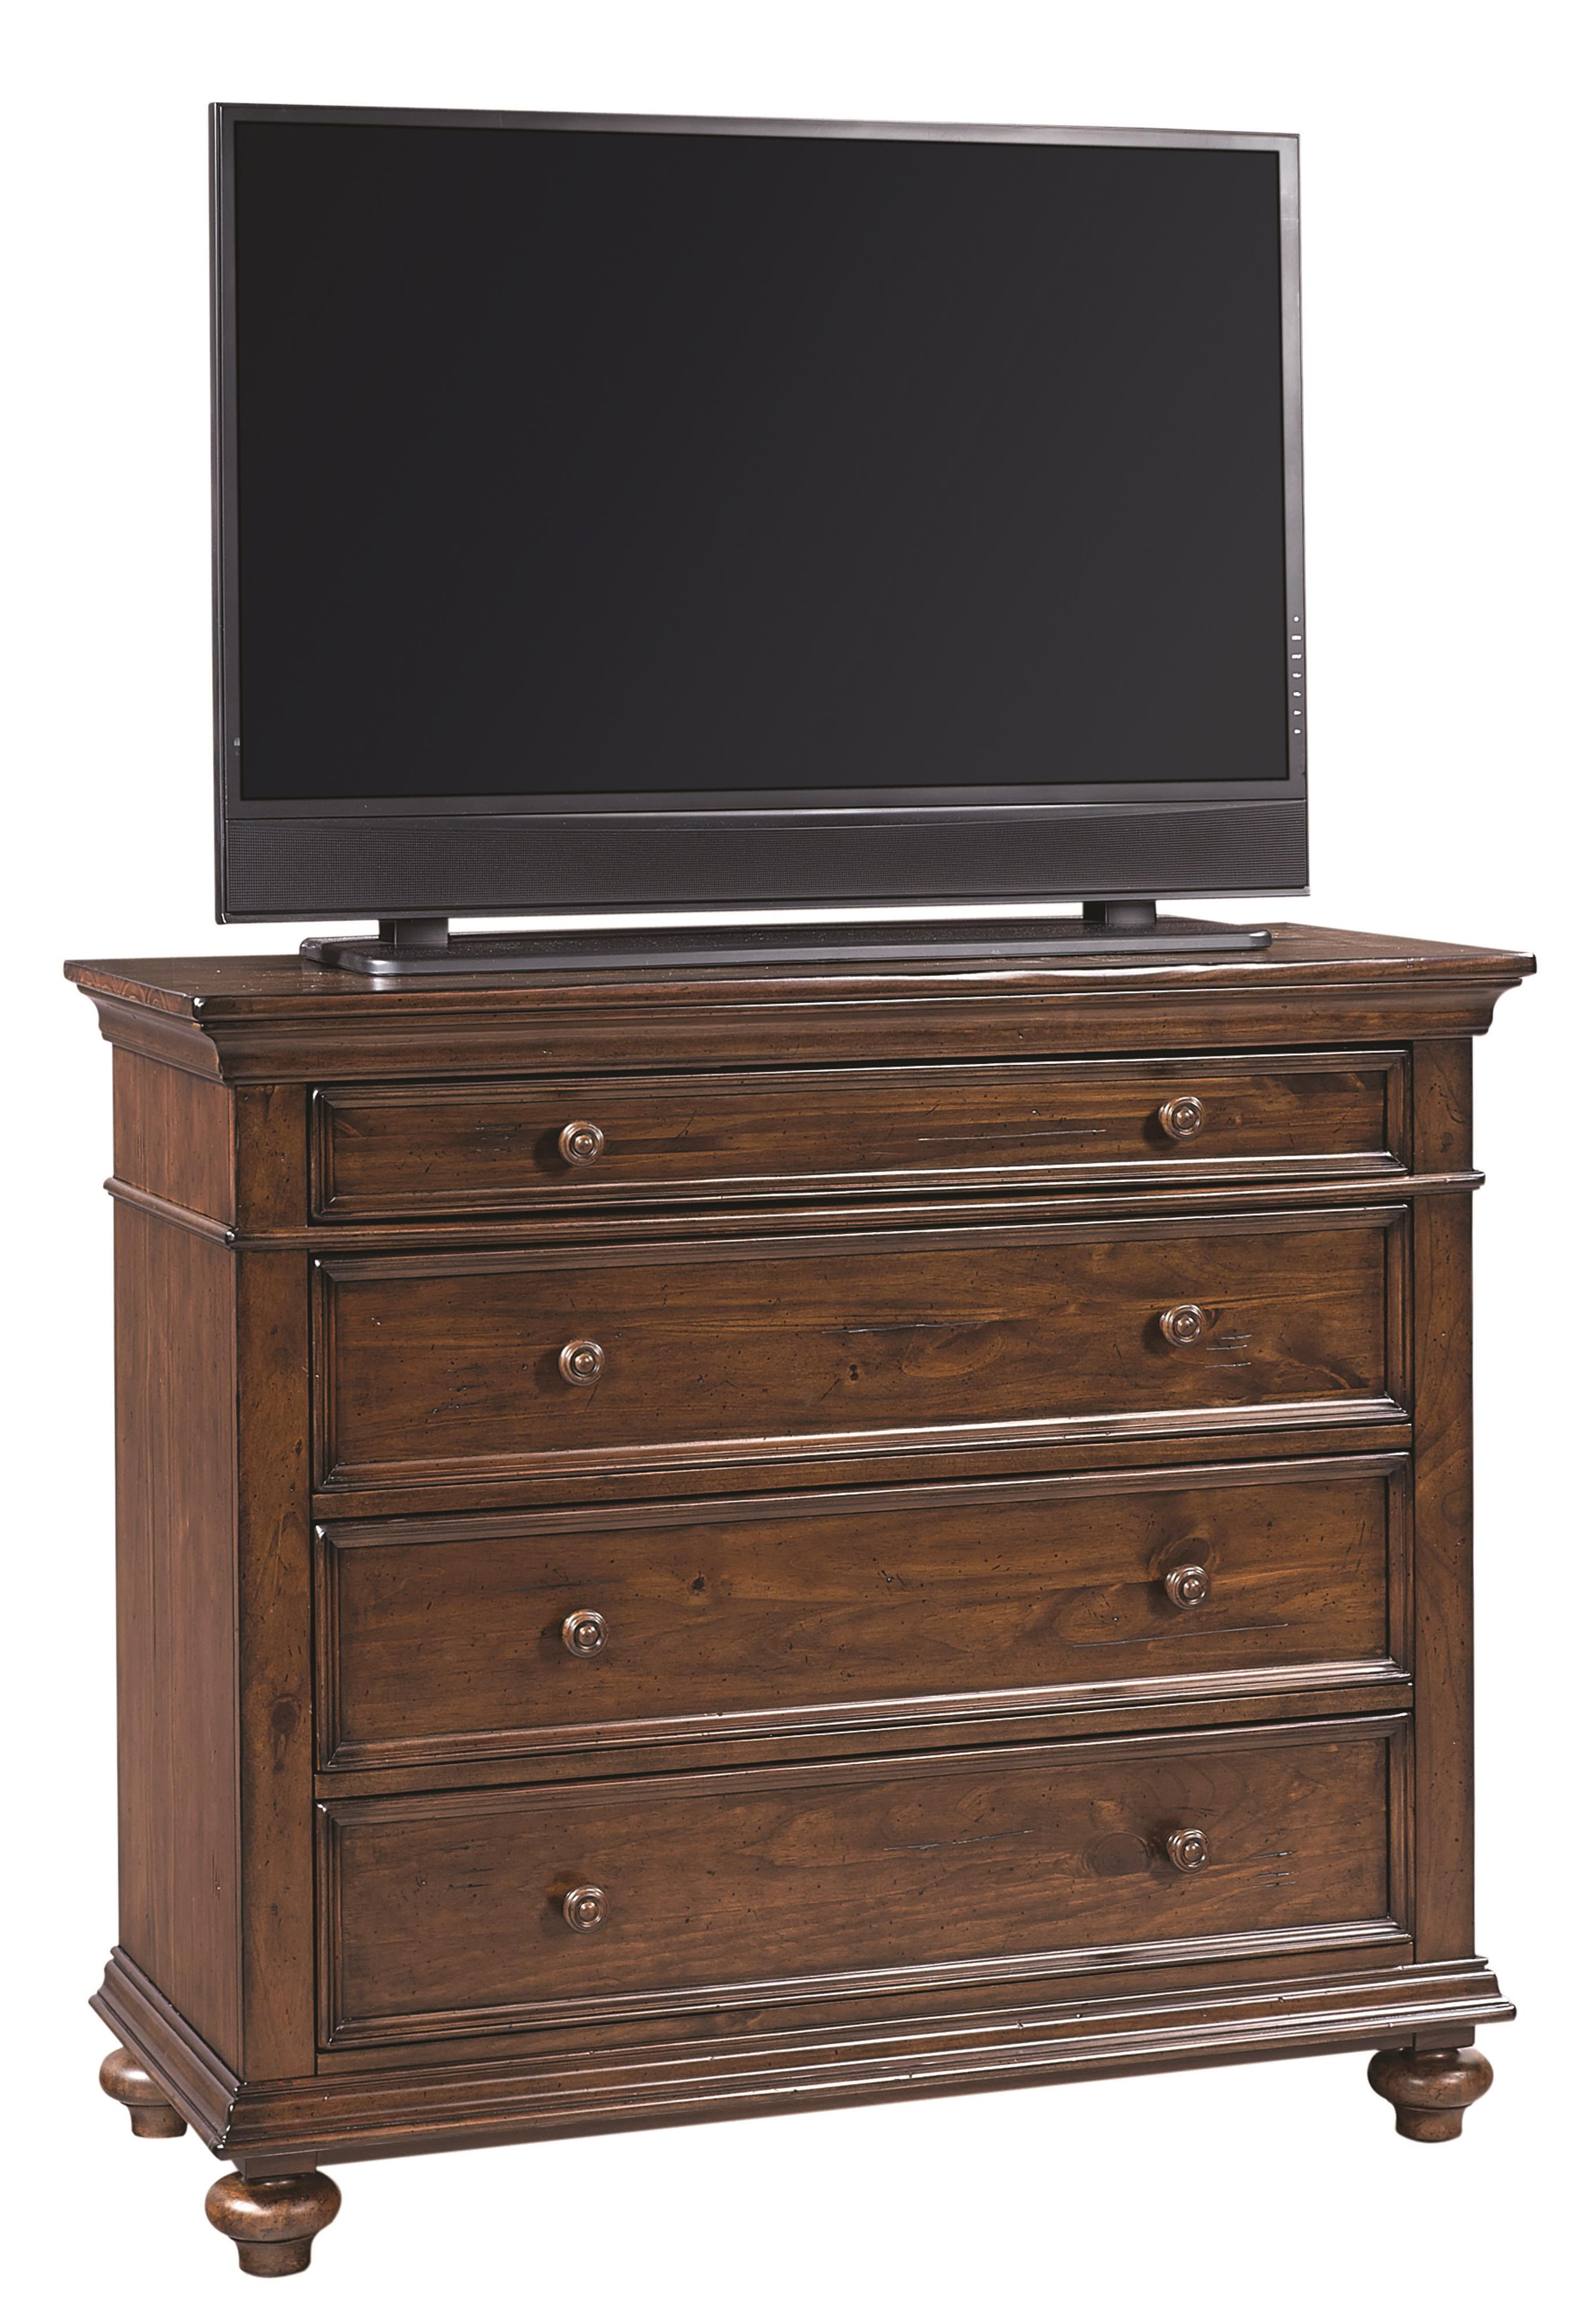 Aspenhome Camden Liv360 Ent. Chest  - Item Number: I57-486